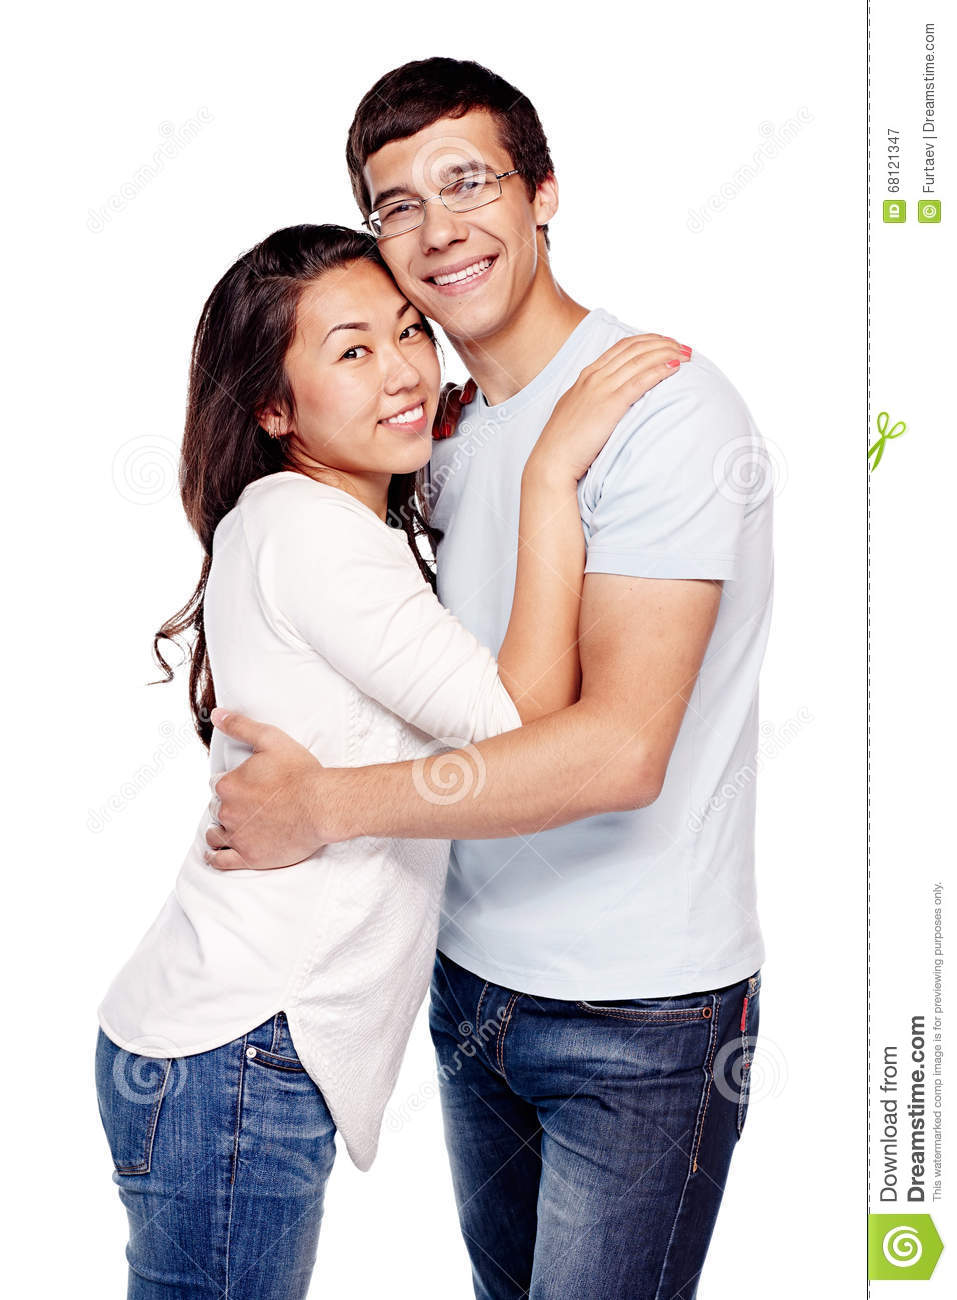 Hispanic girl dating asian guy